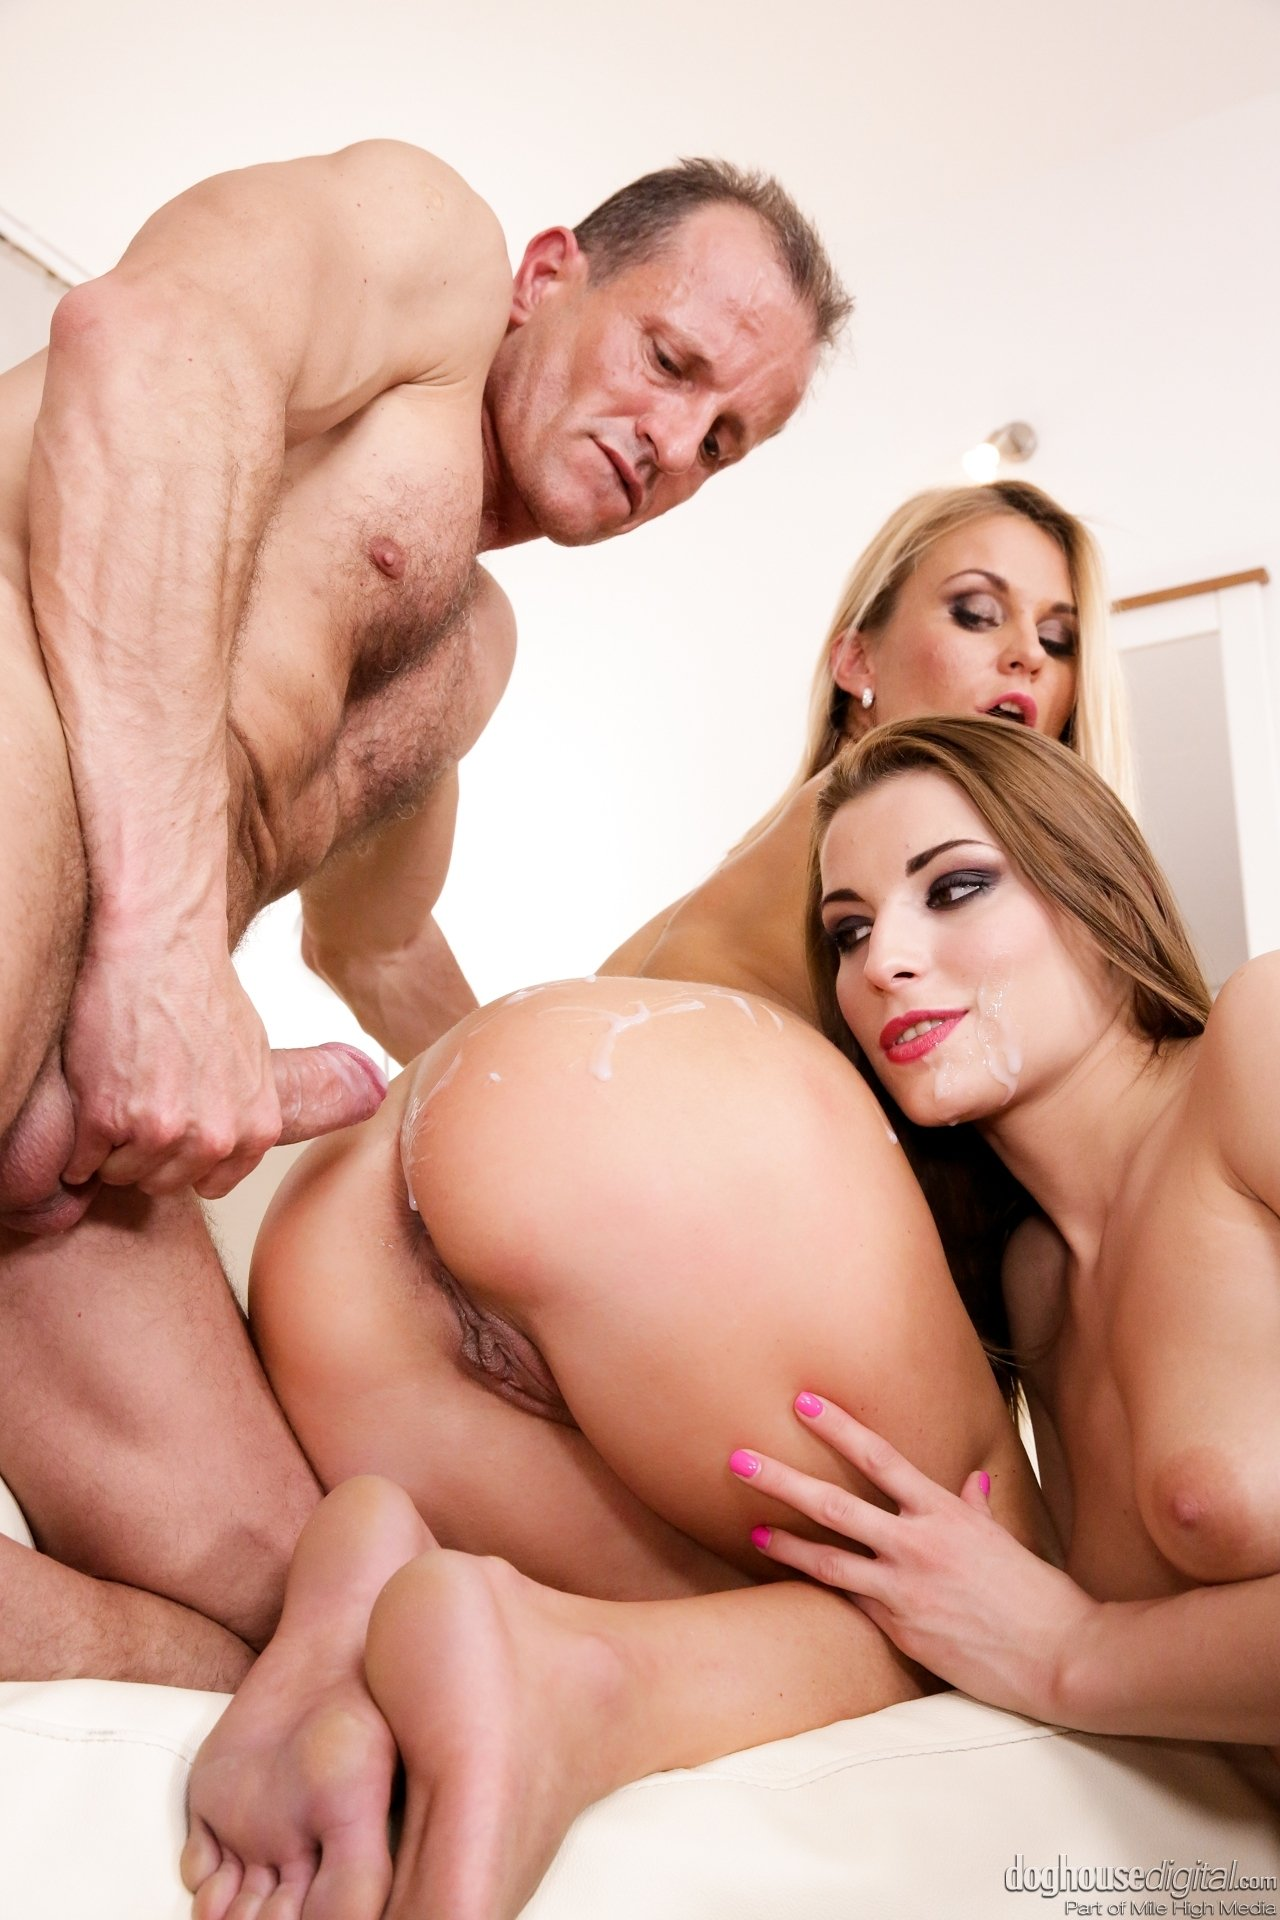 Nudist family picture movie